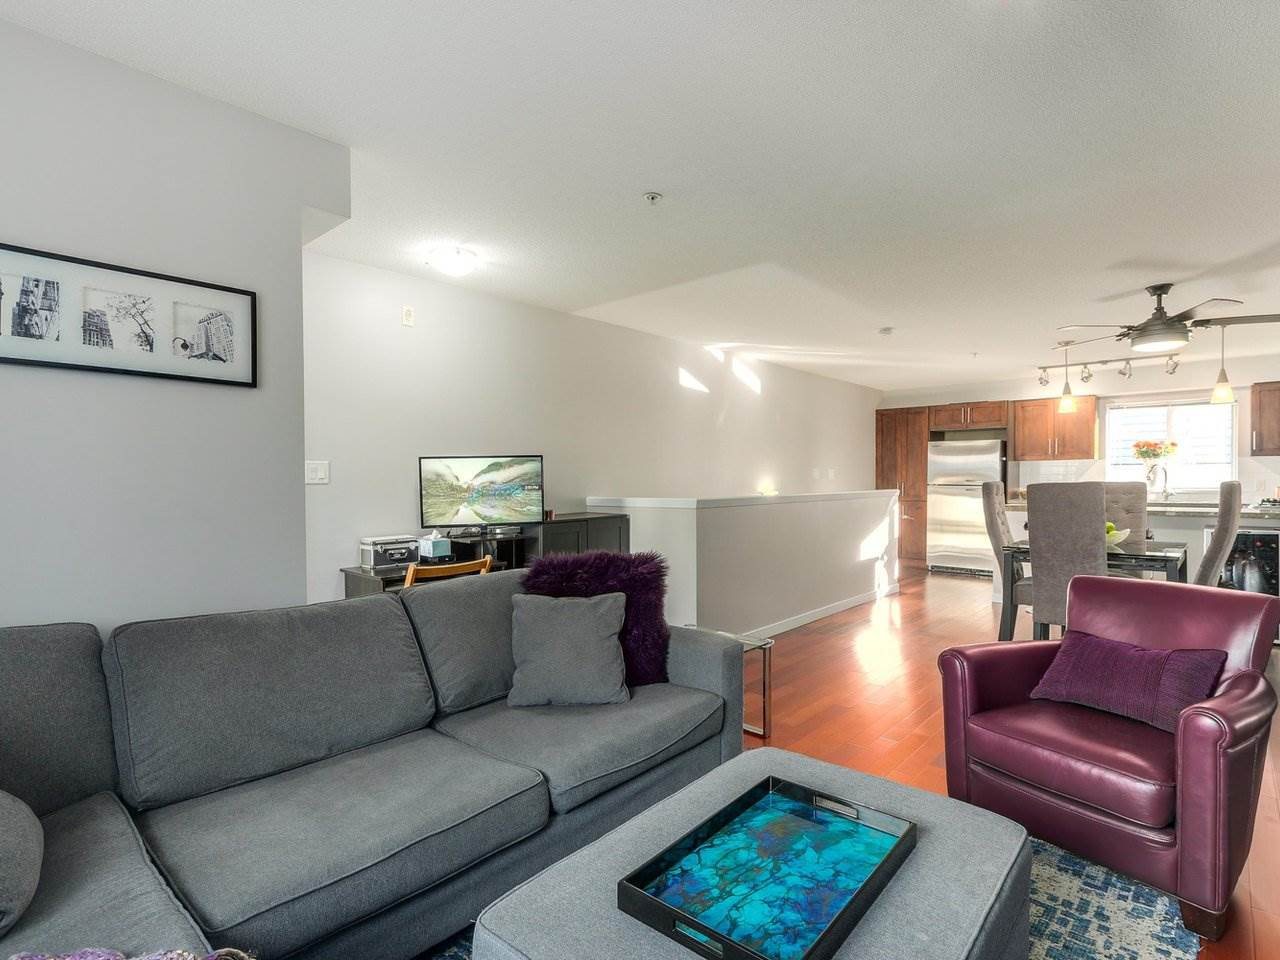 Photo 5: Photos: 119 672 W 6TH AVENUE in Vancouver: Fairview VW Townhouse for sale (Vancouver West)  : MLS®# R2401186